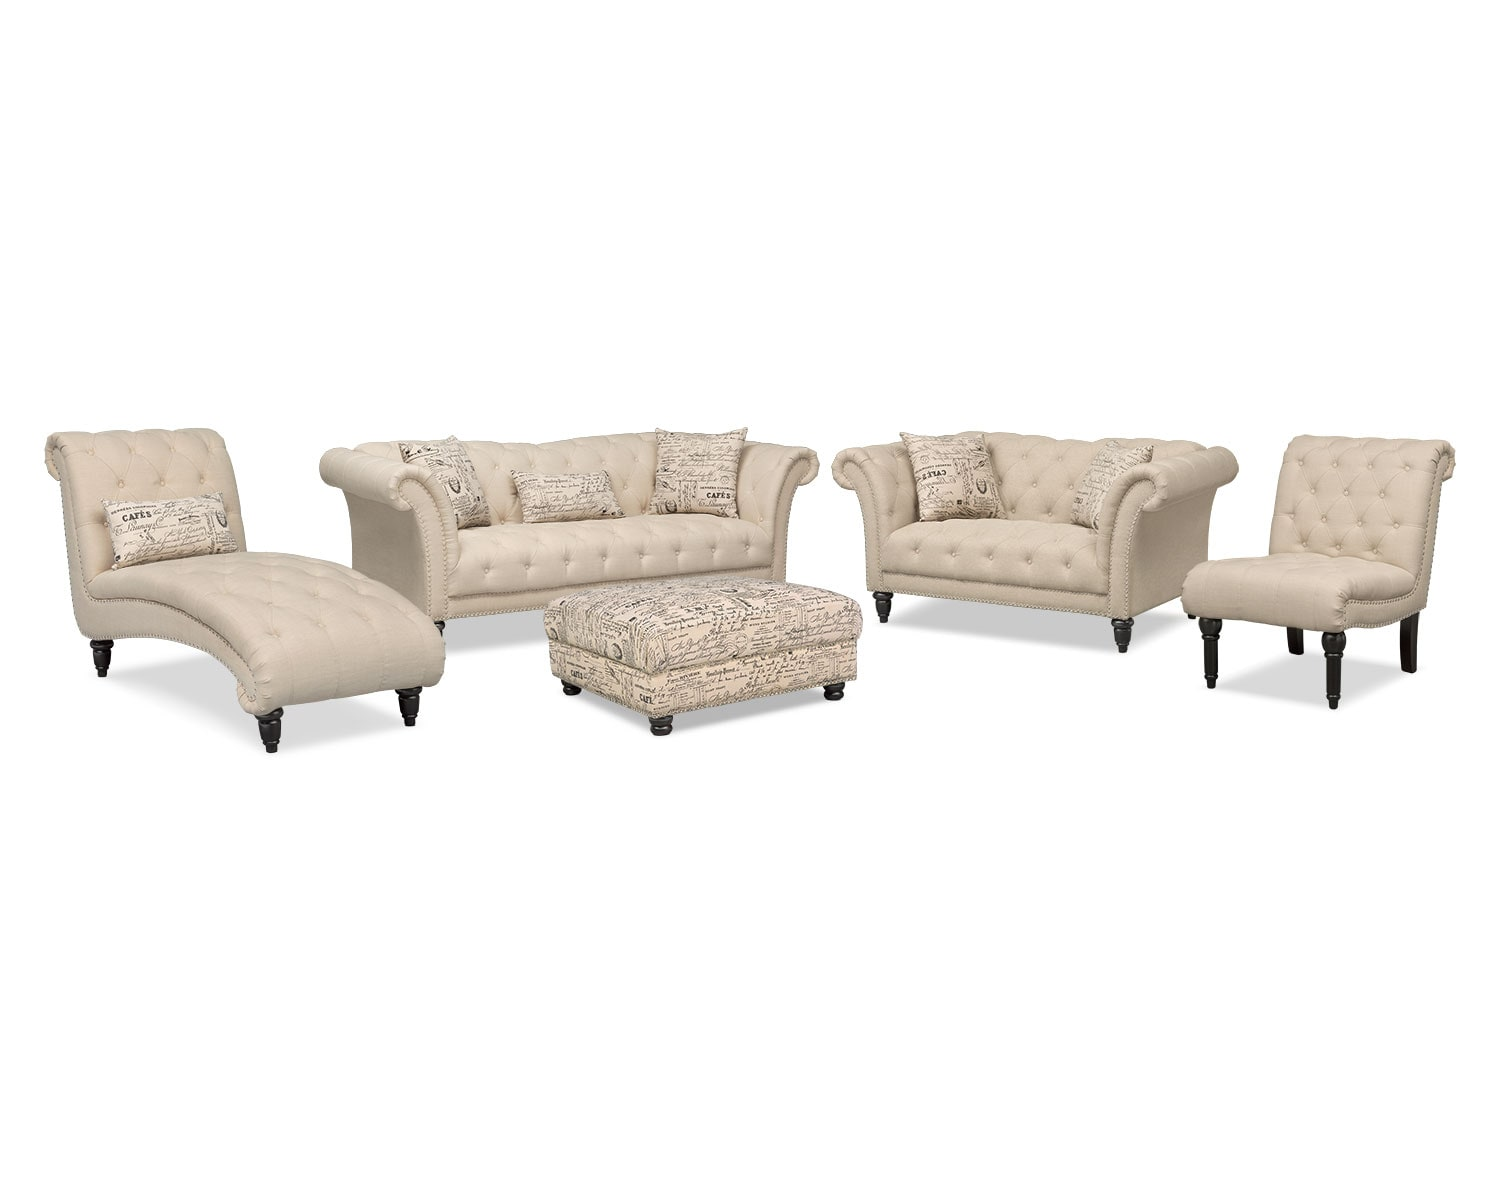 Living room furniture best sellers value city furniture for Best value living room furniture